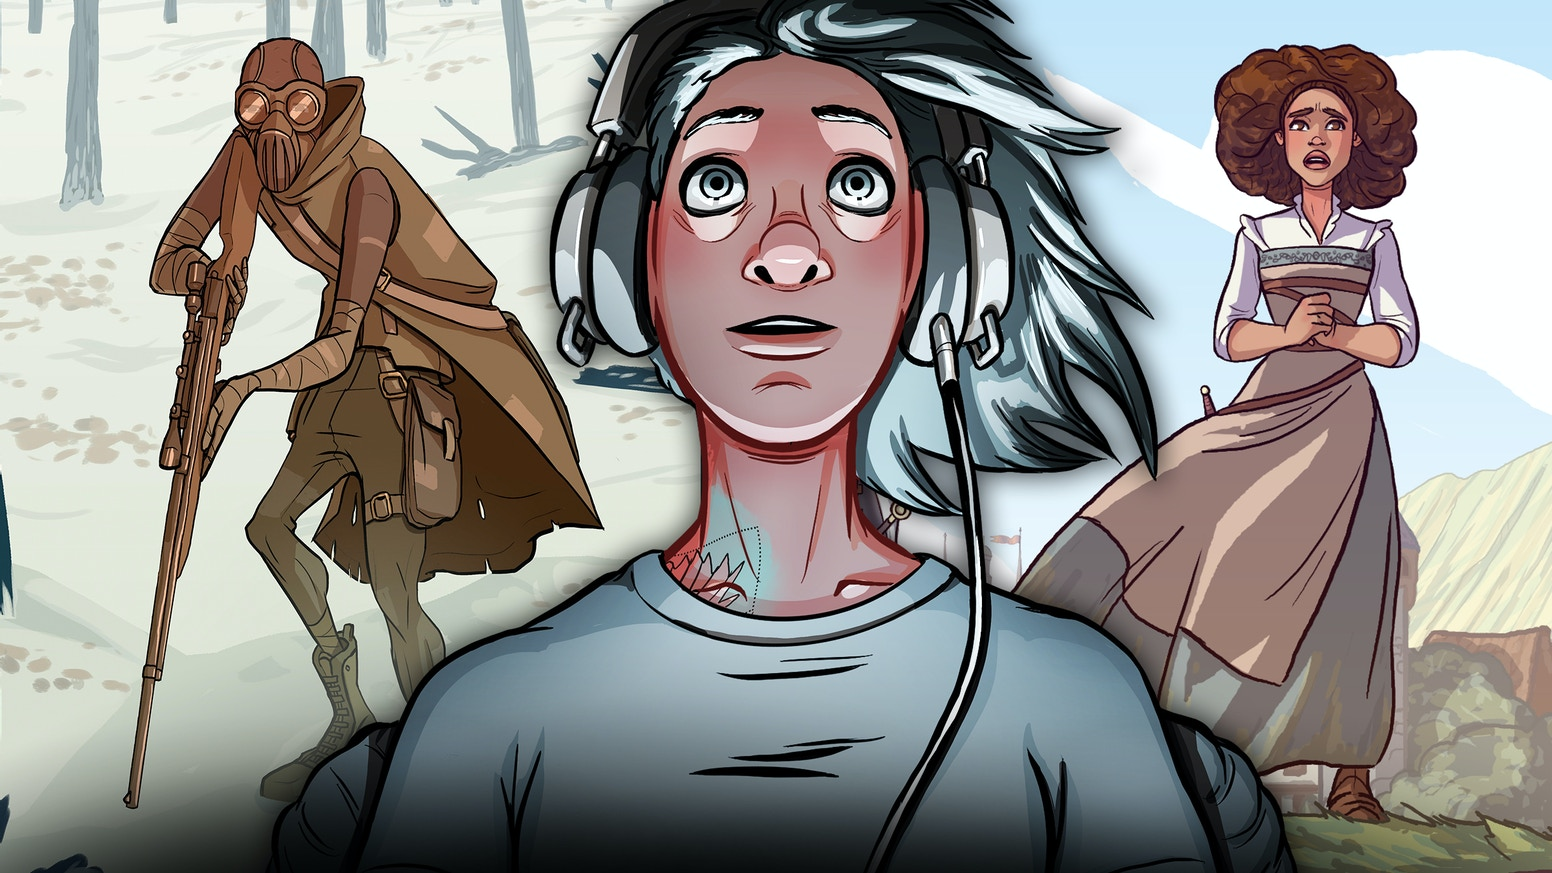 15 fantasy, sci-fi, and horror comics exploring what it means to be human.